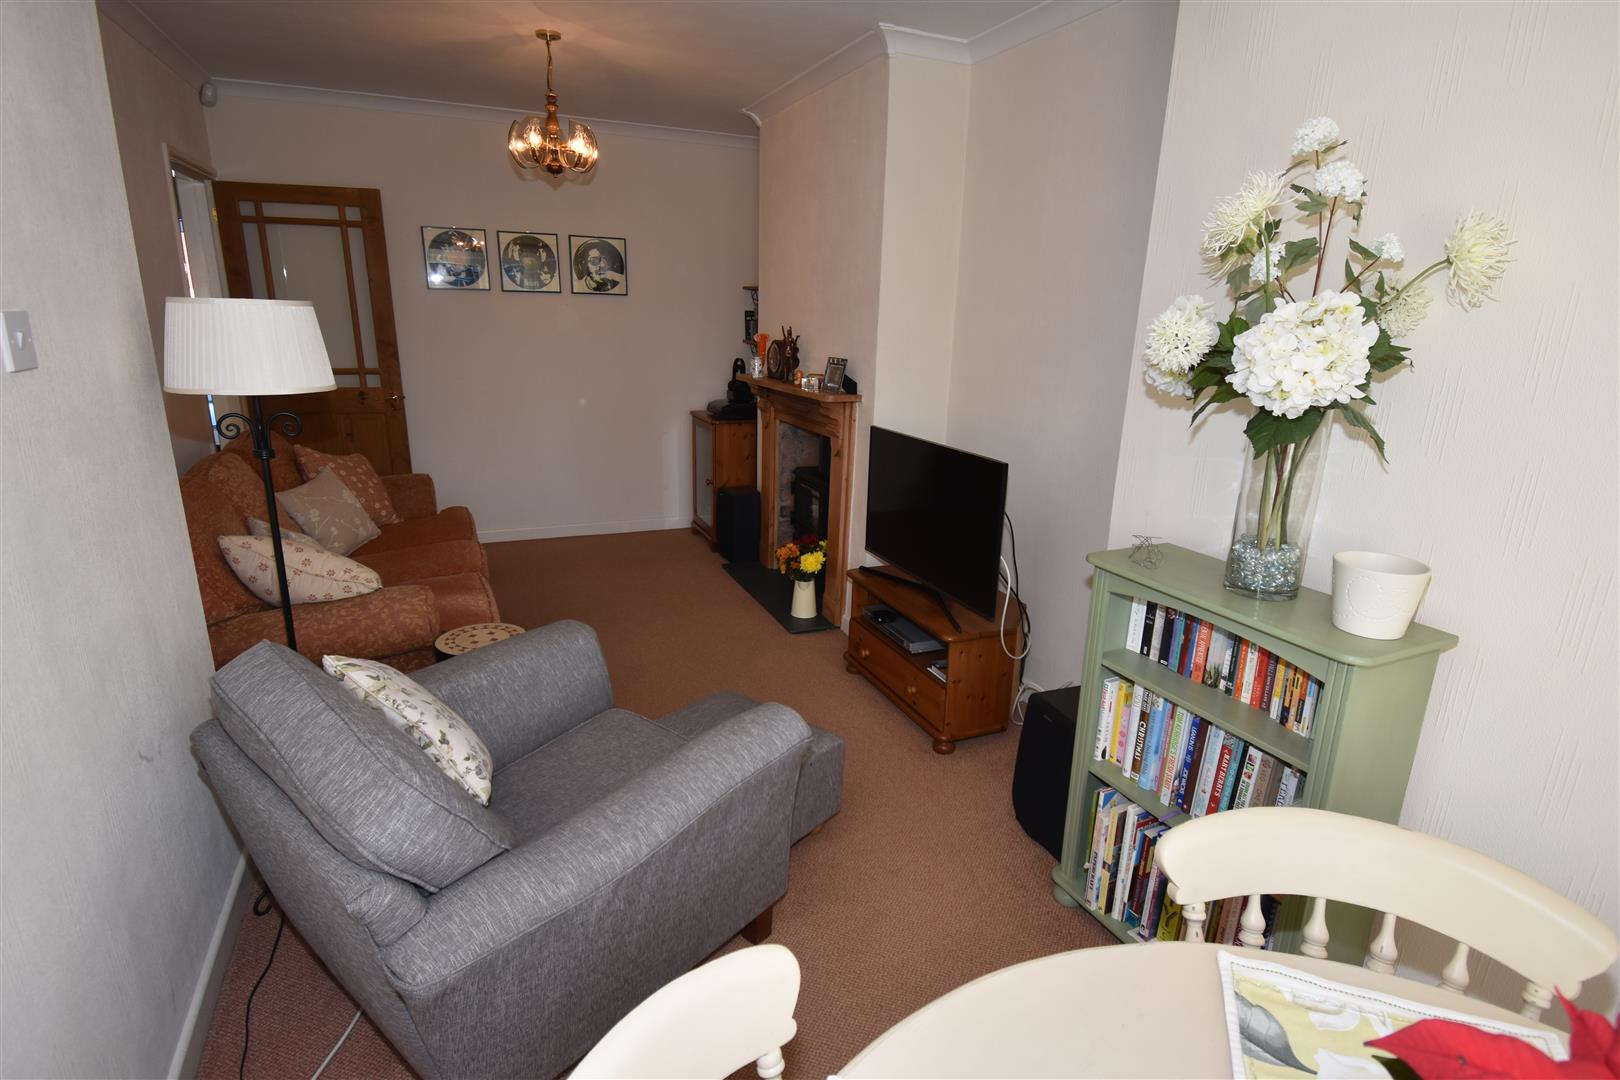 3 bed house for sale in Bromford Road, Hodge Hill, Birmingham B36 8HR 5